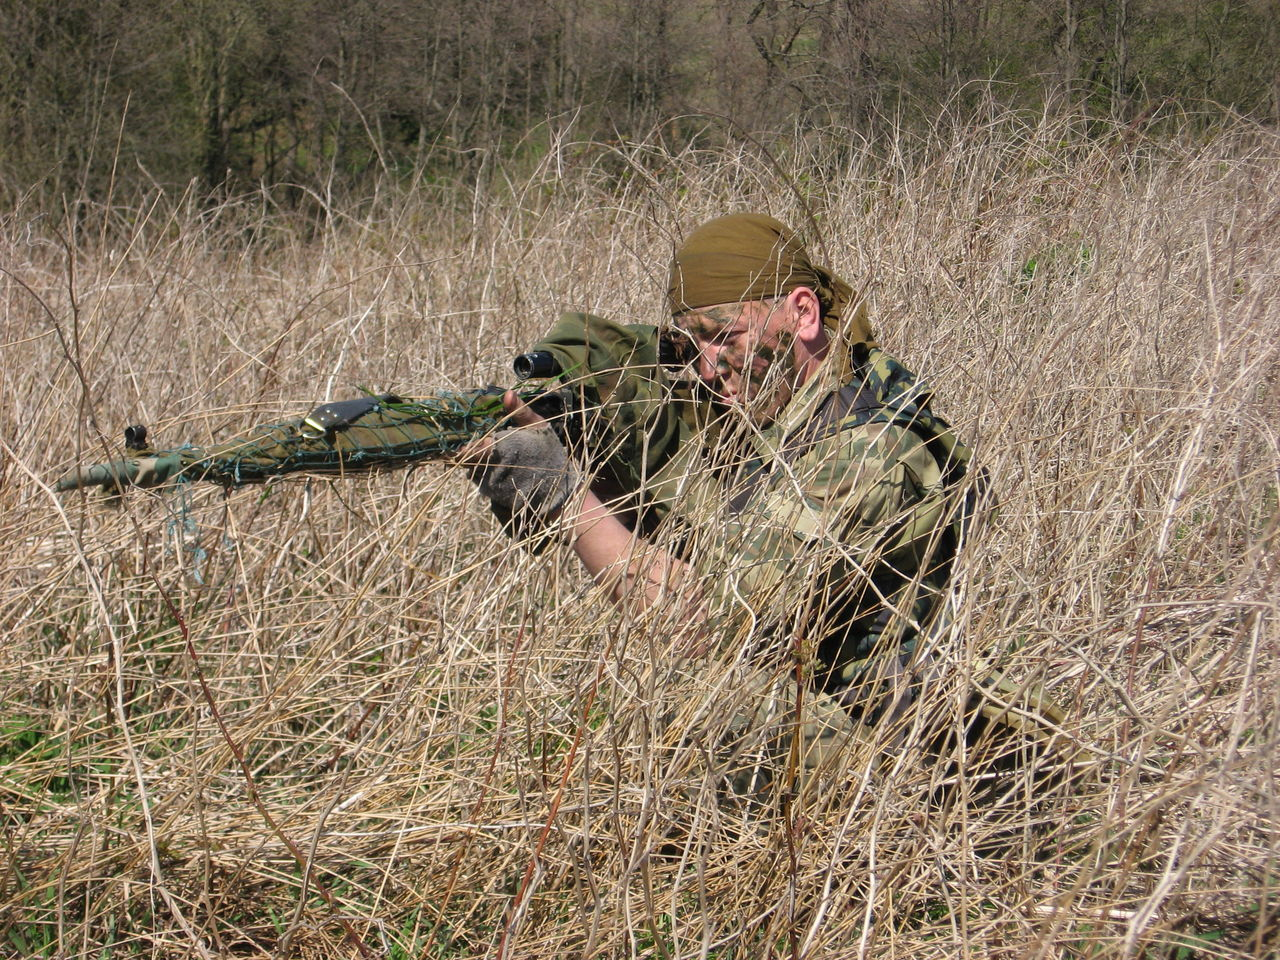 The sniper hides in the grass and aims at the target. Fighter of special troops. Trainings on carrying out firing practice and ambushes. Armed Forces Army Army Soldier Camouflage Camouflage Clothing Conflicts Gun Investigation Masking Men Military Military Uniform Rifle Saboteur Scout Sniper Soldier Special Troops Suit Syria  Ukraine Uniform War Weapon